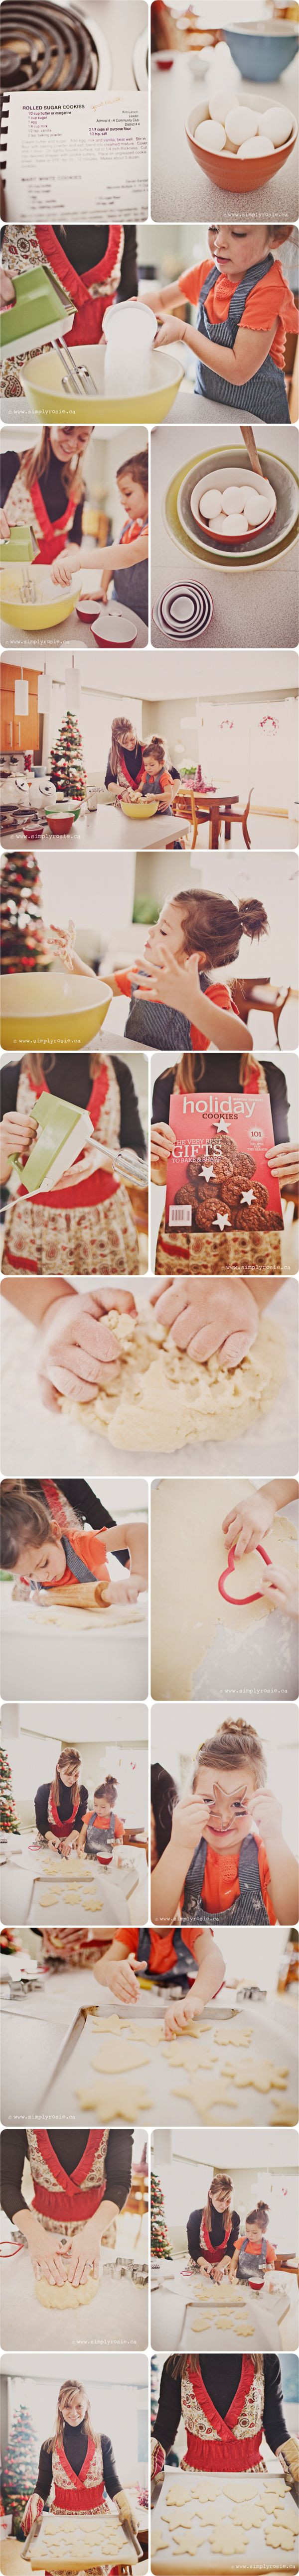 THIS. shoot. Oh my - Ack, it's so cute!!! I want to do a cookie shoot now!